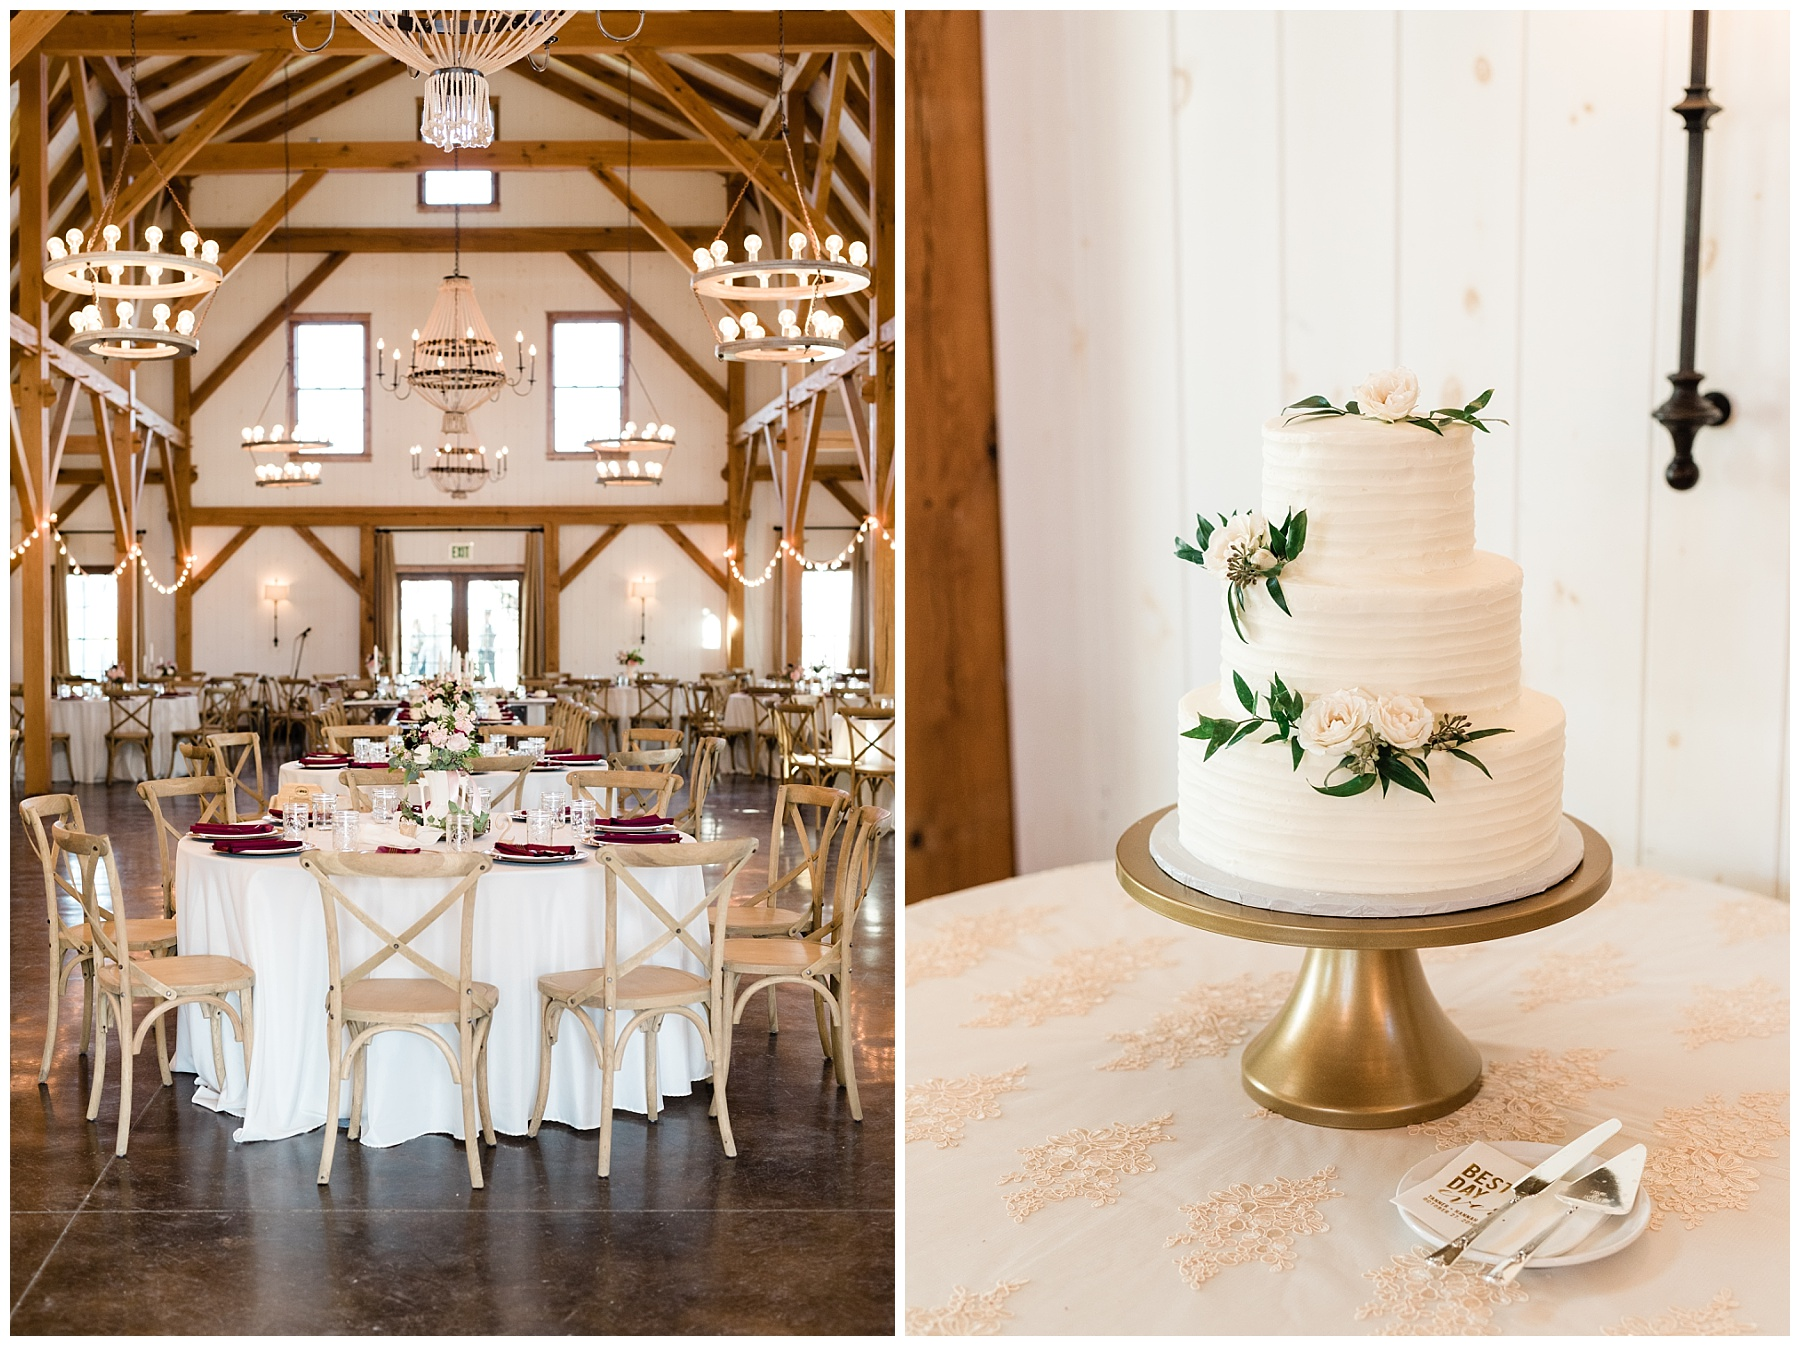 Golden Autumn Outdoor Wedding with Ivory, Bergundy, and Blush Color Palette at Blue Bell Farms  by Kelsi Kliethermes Photography_0058.jpg